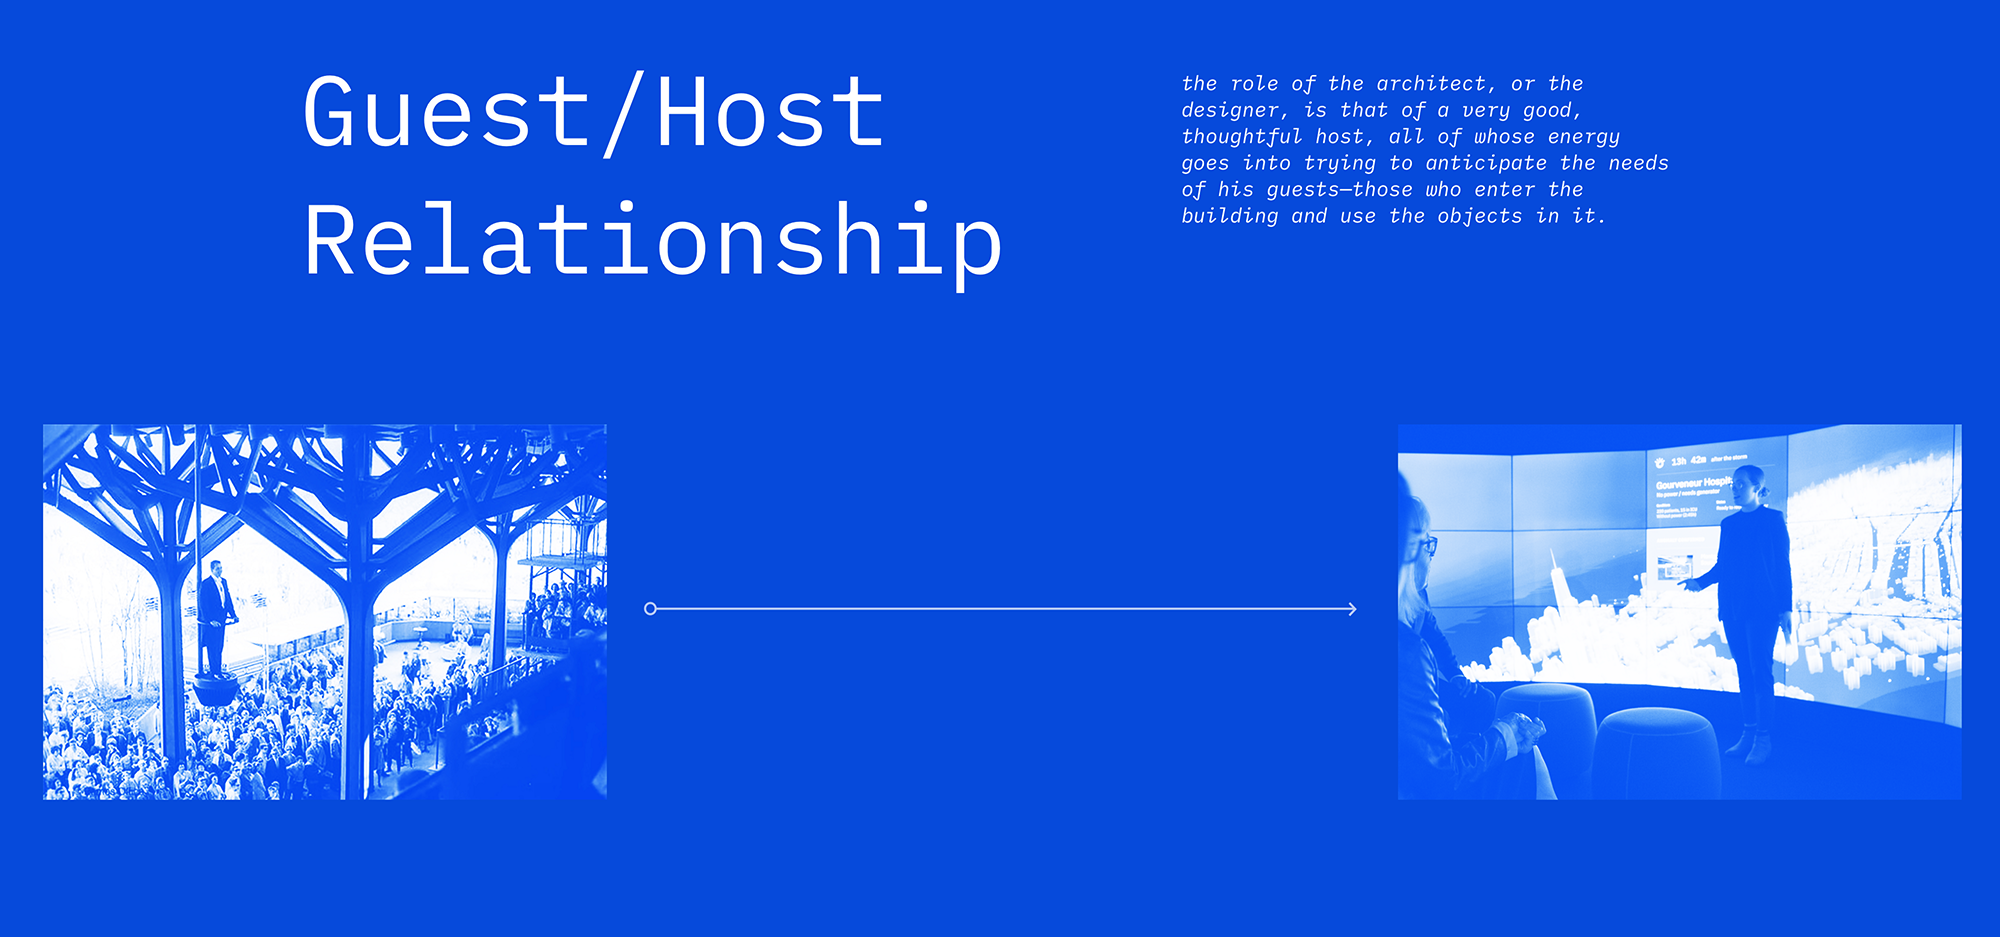 The guest host relationship: the role of the architect, or the designer, is that of a very good, thoughtful host, all of whose energy goes into trying to anticipate the needs of his guests—those who enter the building and use the objects in it.